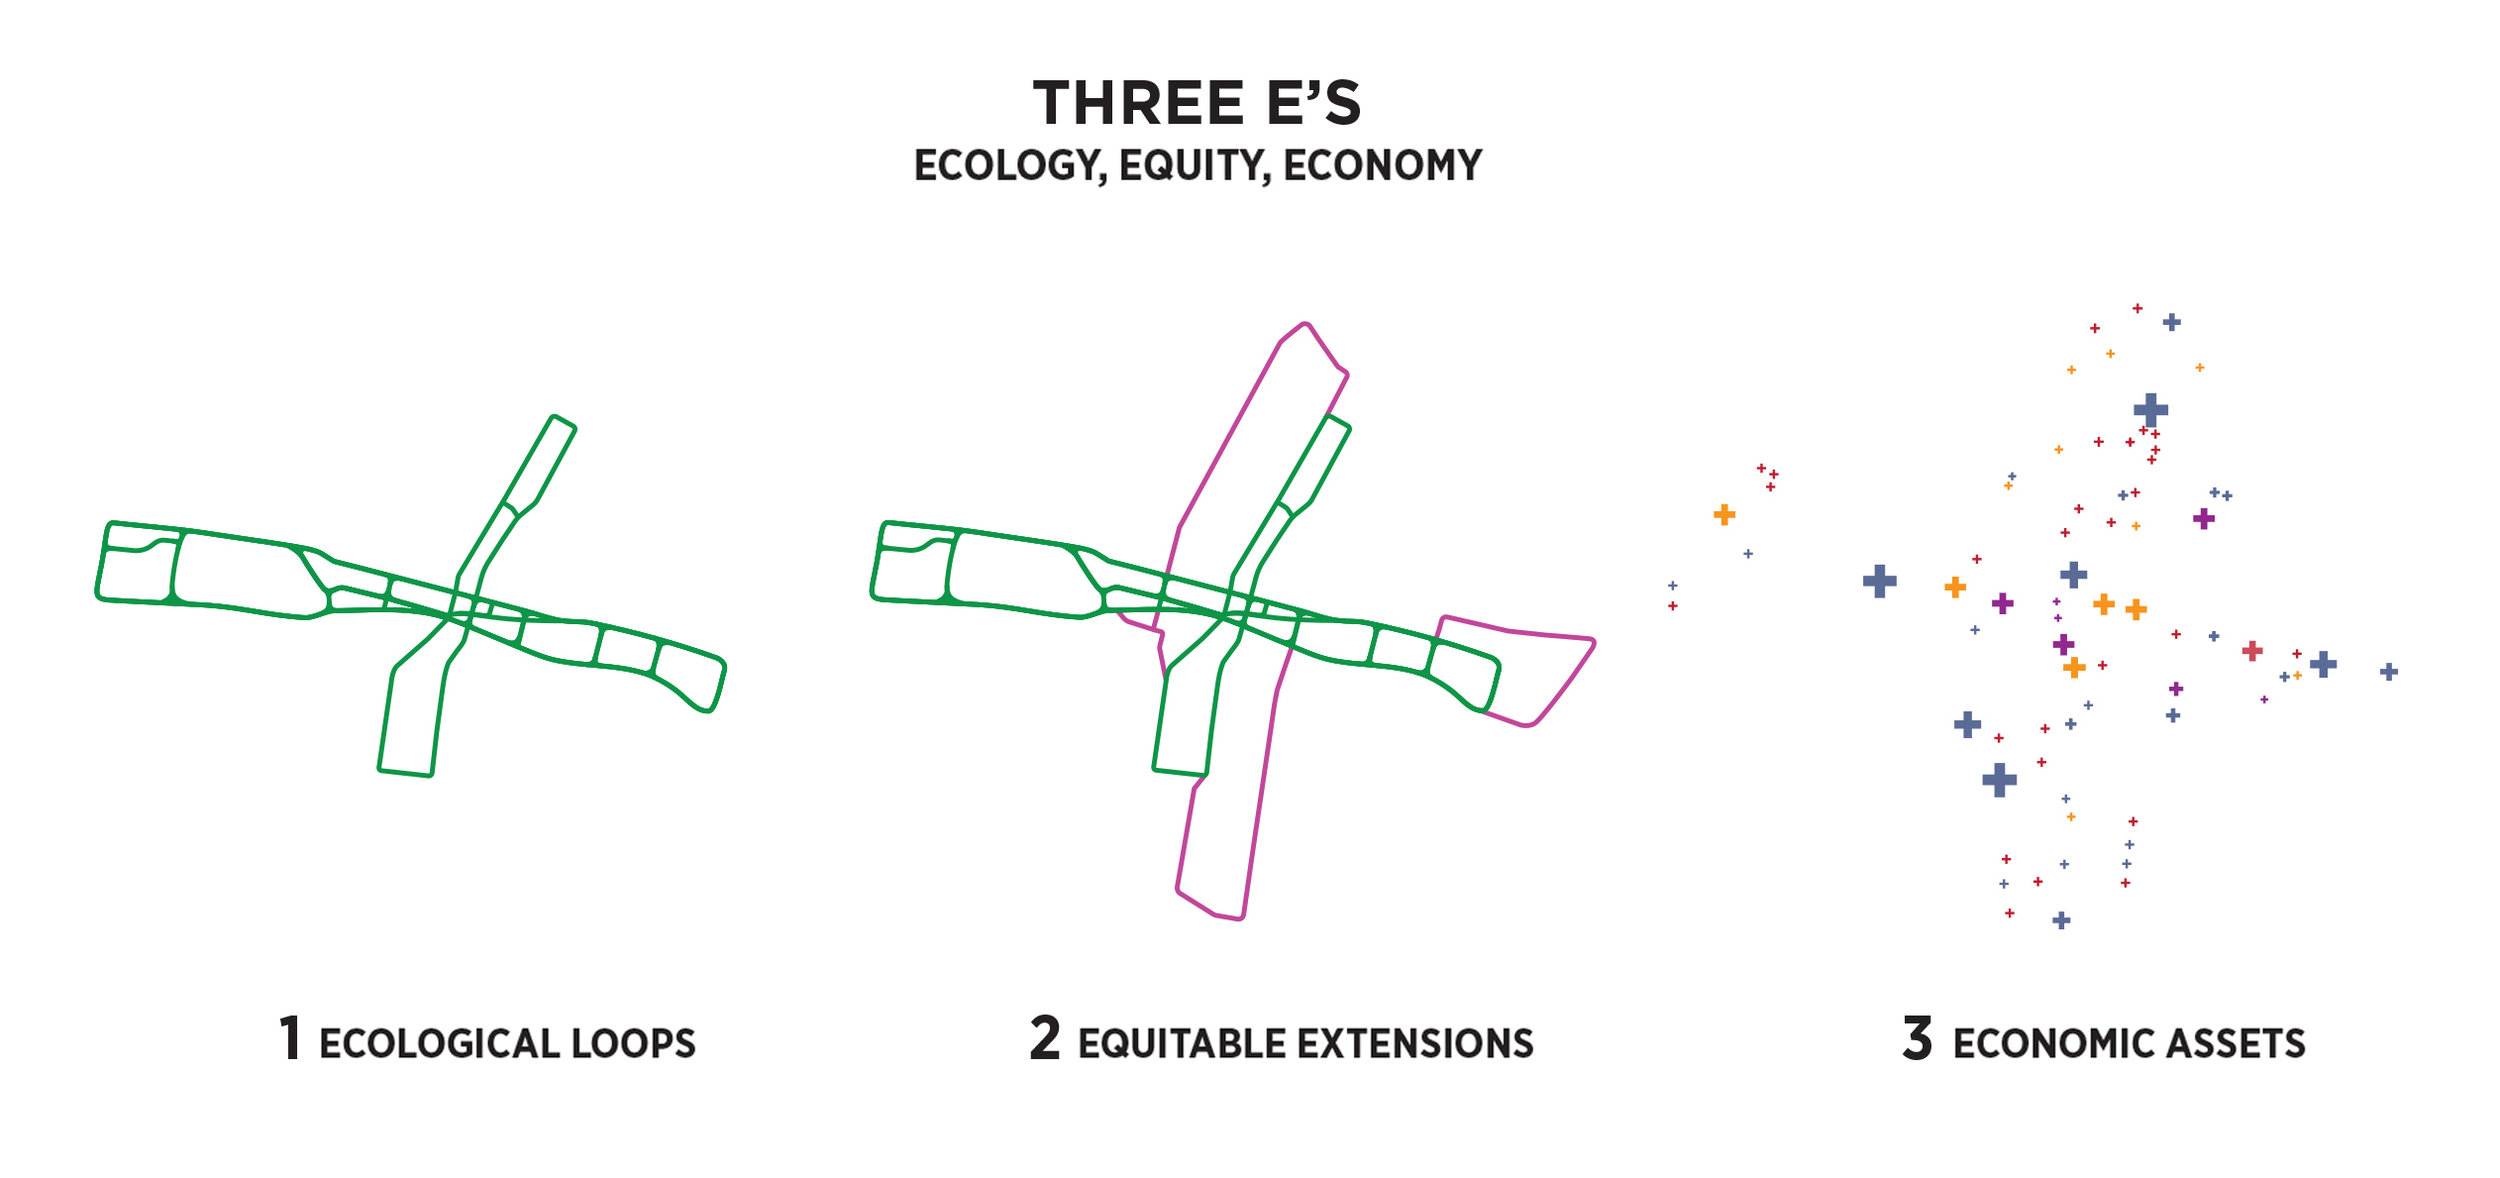 CONCEPT  The +StL Greenway project is designed to amplify the existing assets of St. Louis while taking powerful measures to address the multitude of challenges the city is facing. To do this, we propose a layered strategy with three primary components: Ecological Loops, Equitable Extensions, and Economic Assets : we call them the three E's. Combined, these 3 E's address opportunities for economic development and access, performative landscape ecology, and equitable access to jobs, institutions, education, and public space.